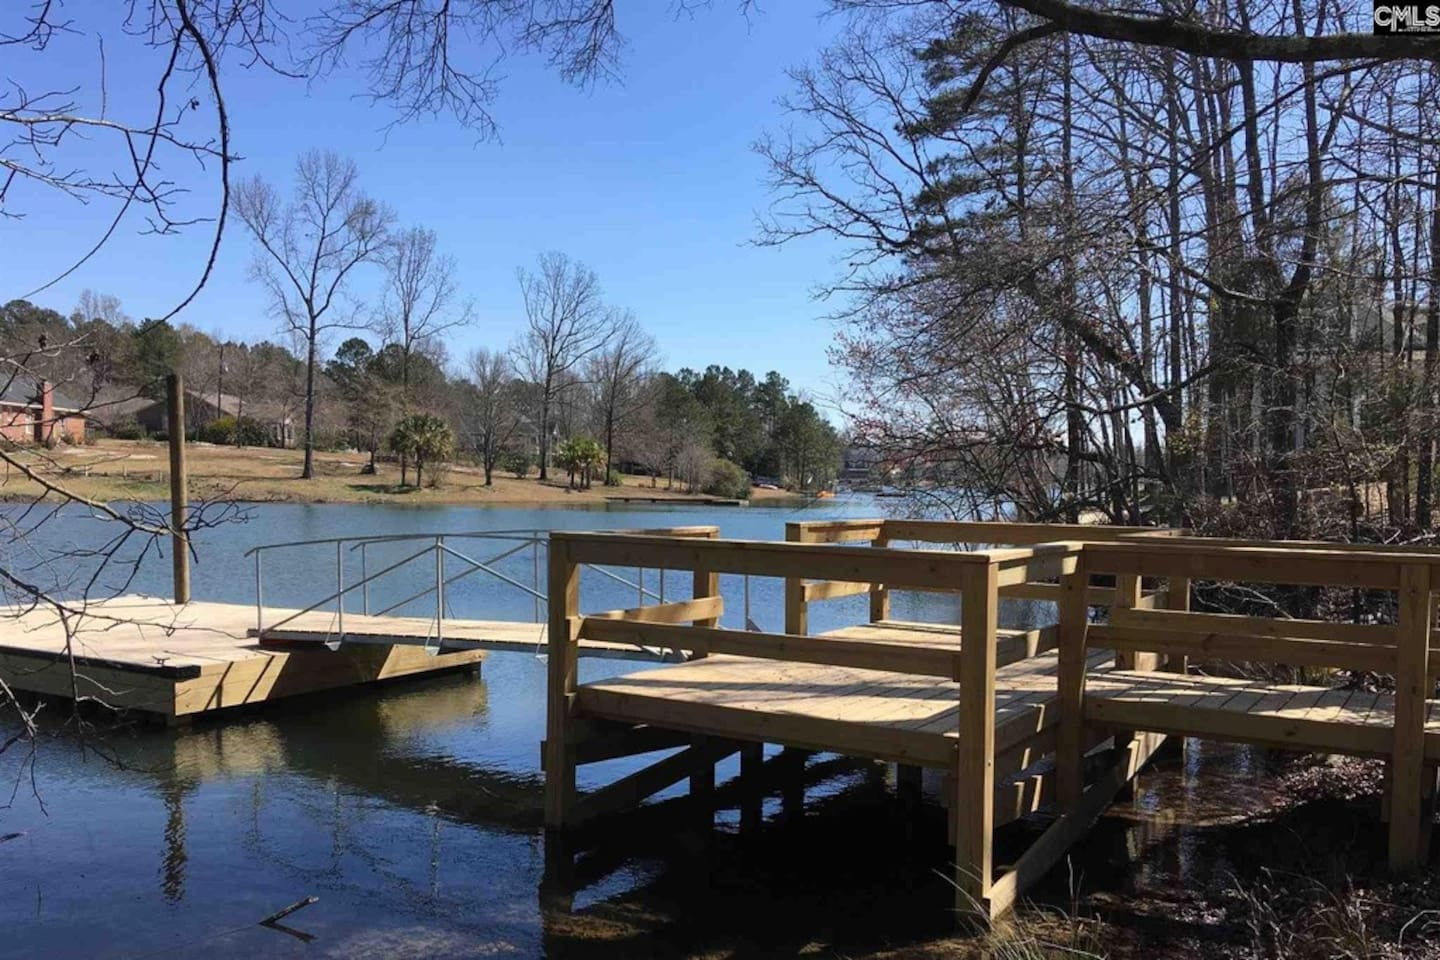 2-3 minute walk to Lake Murray.  This is the neighborhood dock. Docking your boat is permissible while you stay with us. Fishing, Kayaking and skiing is common on Lake Murray.